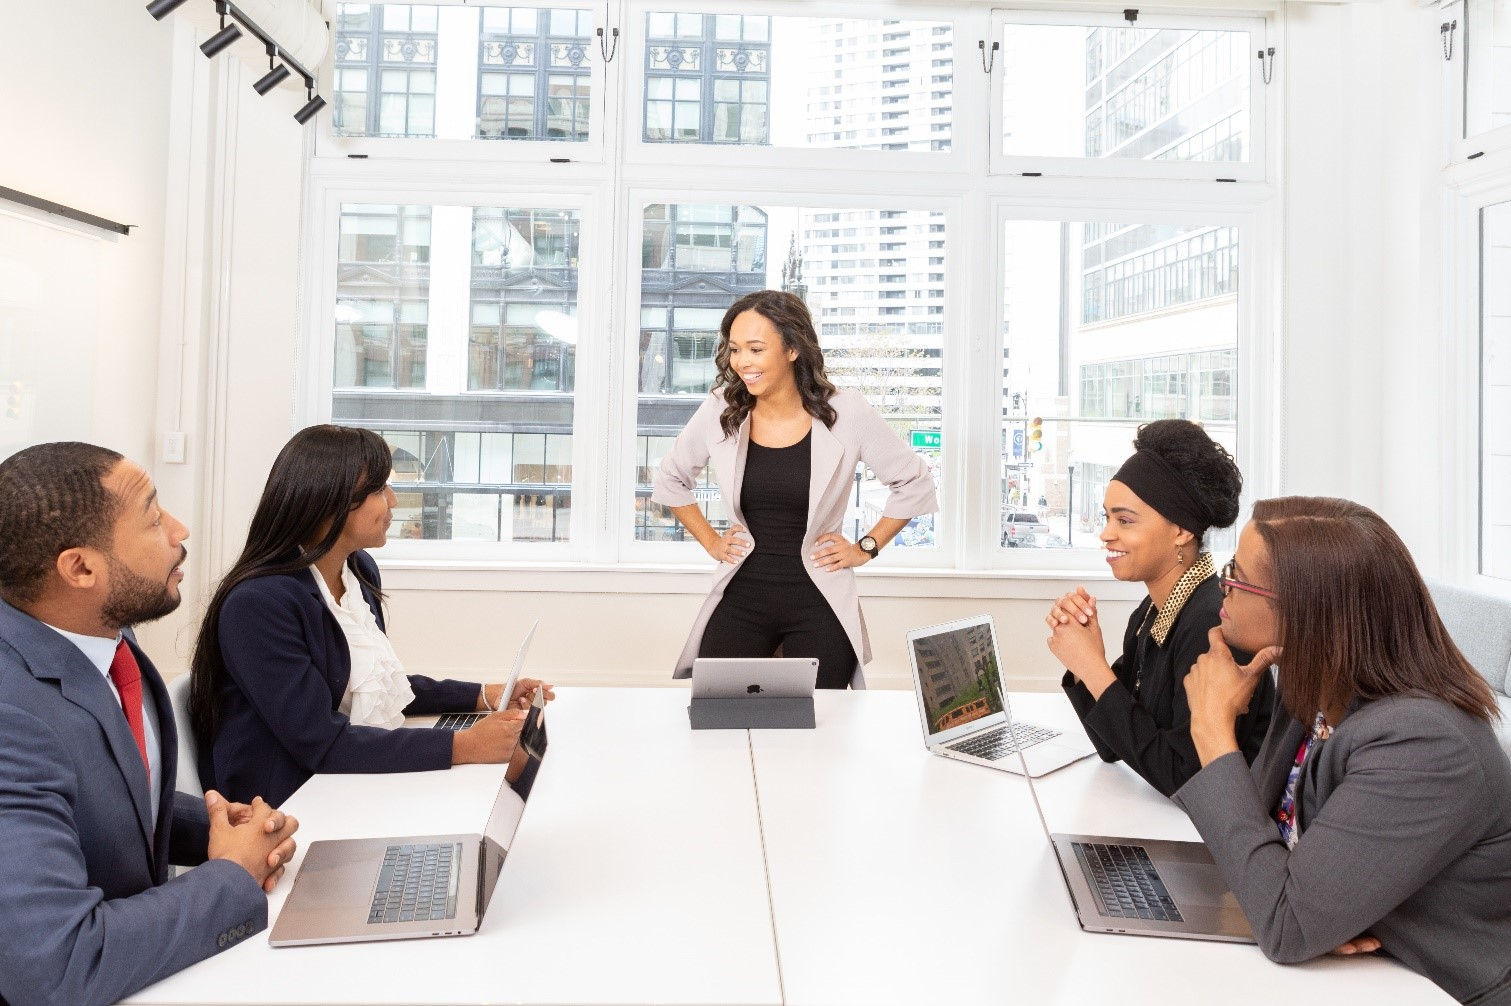 Smartly dressed people in white meeting room